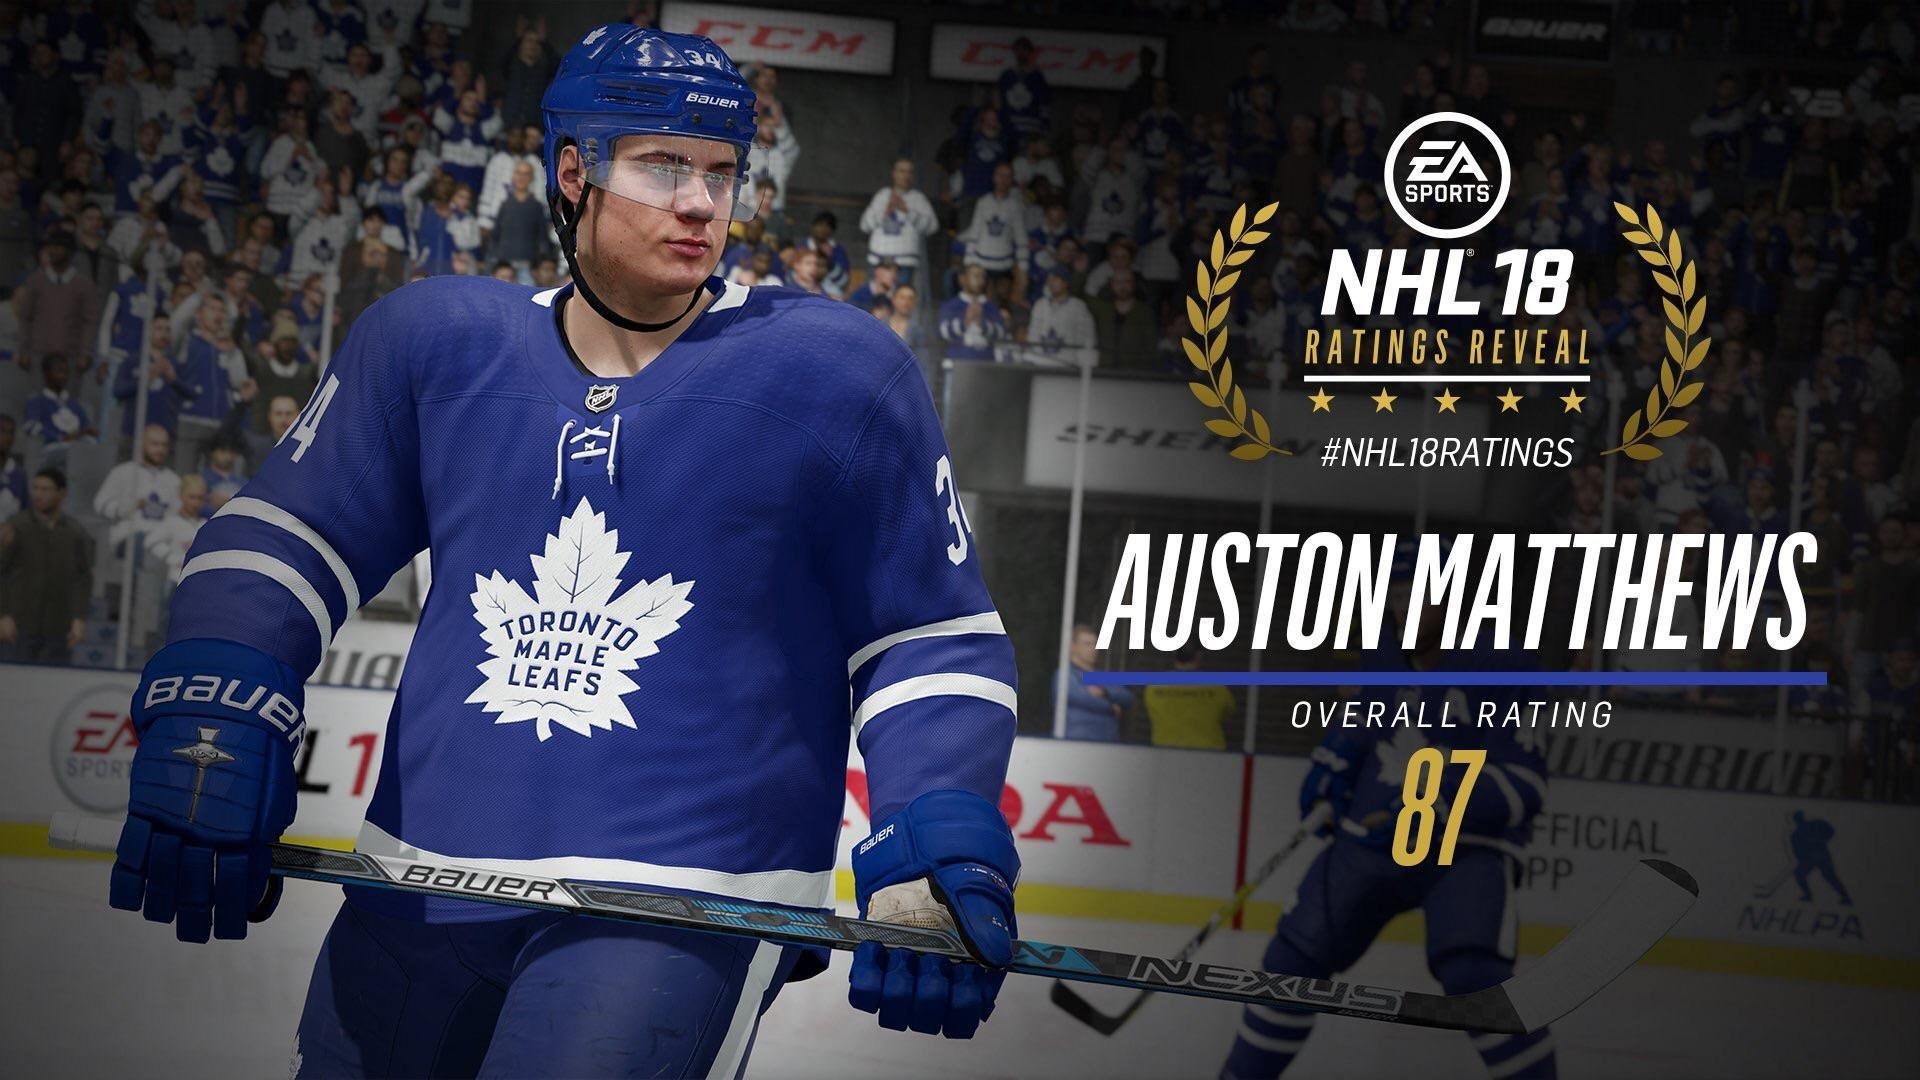 Auston Matthews is rated an 87 in NHL 18 and he's a LEAF! : leafs